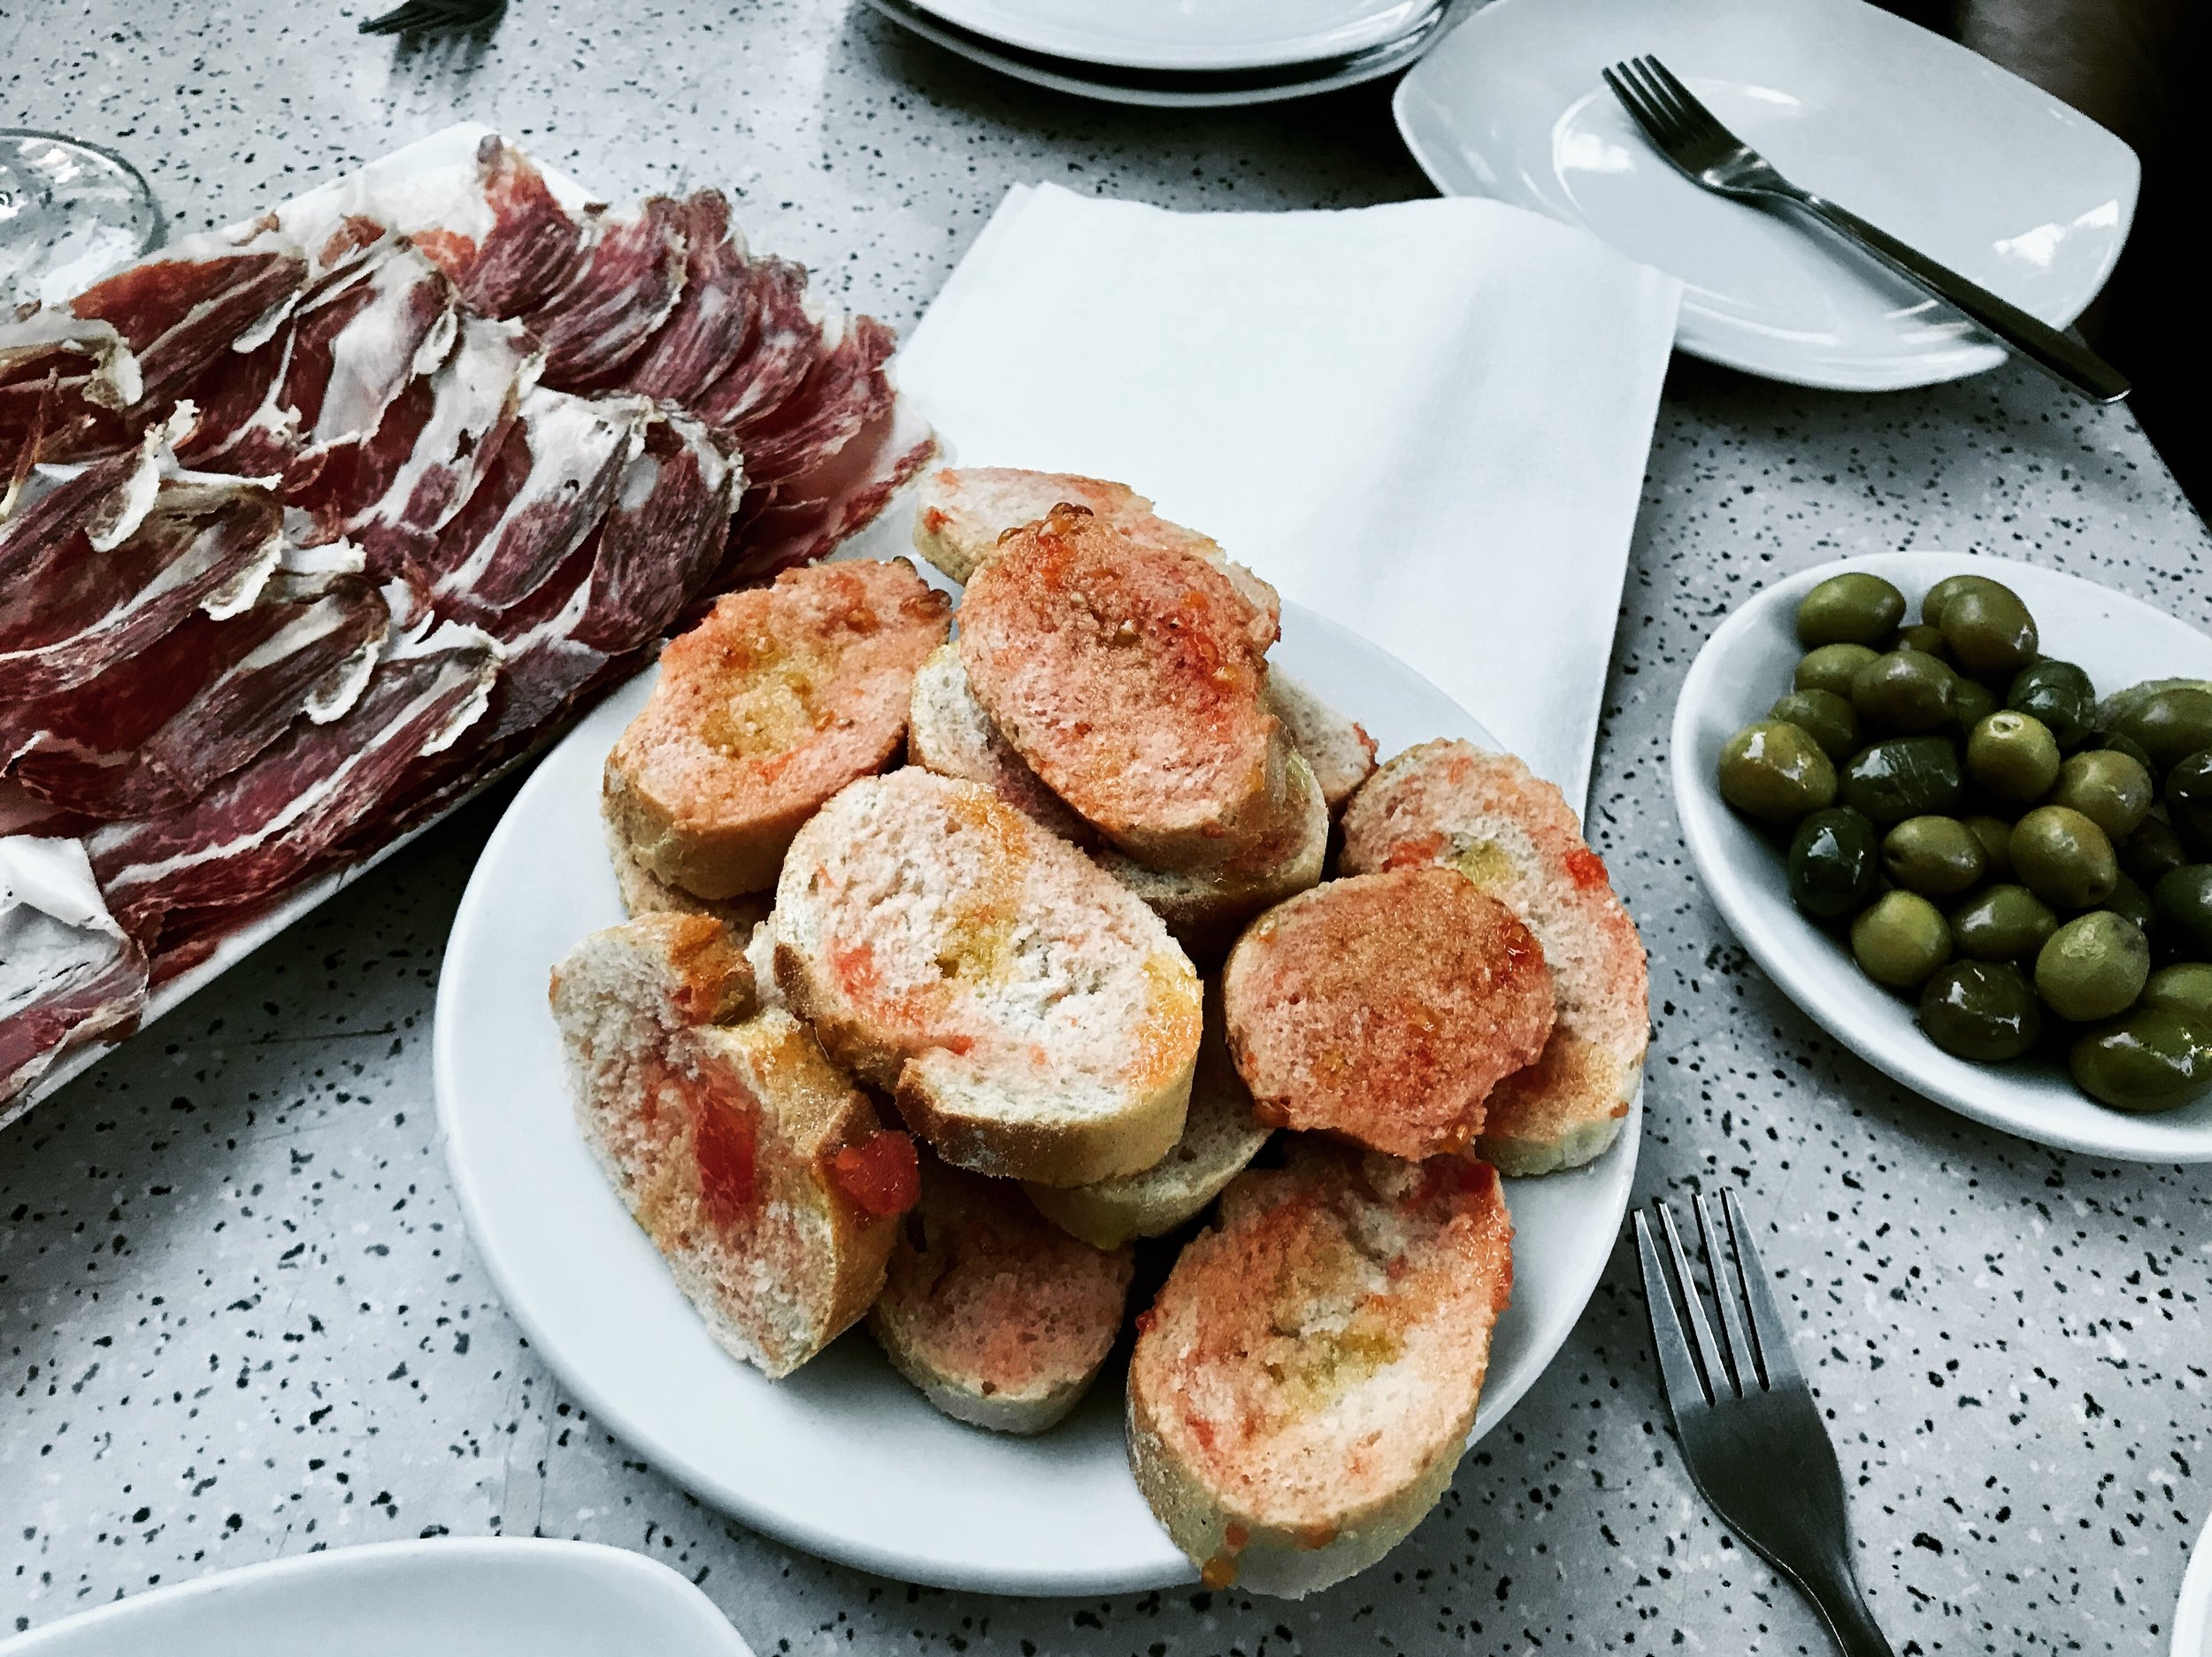 The other classic snacks to go with our drinks - Pa amb tomàquet, assorted olives, and a pile of jamon.